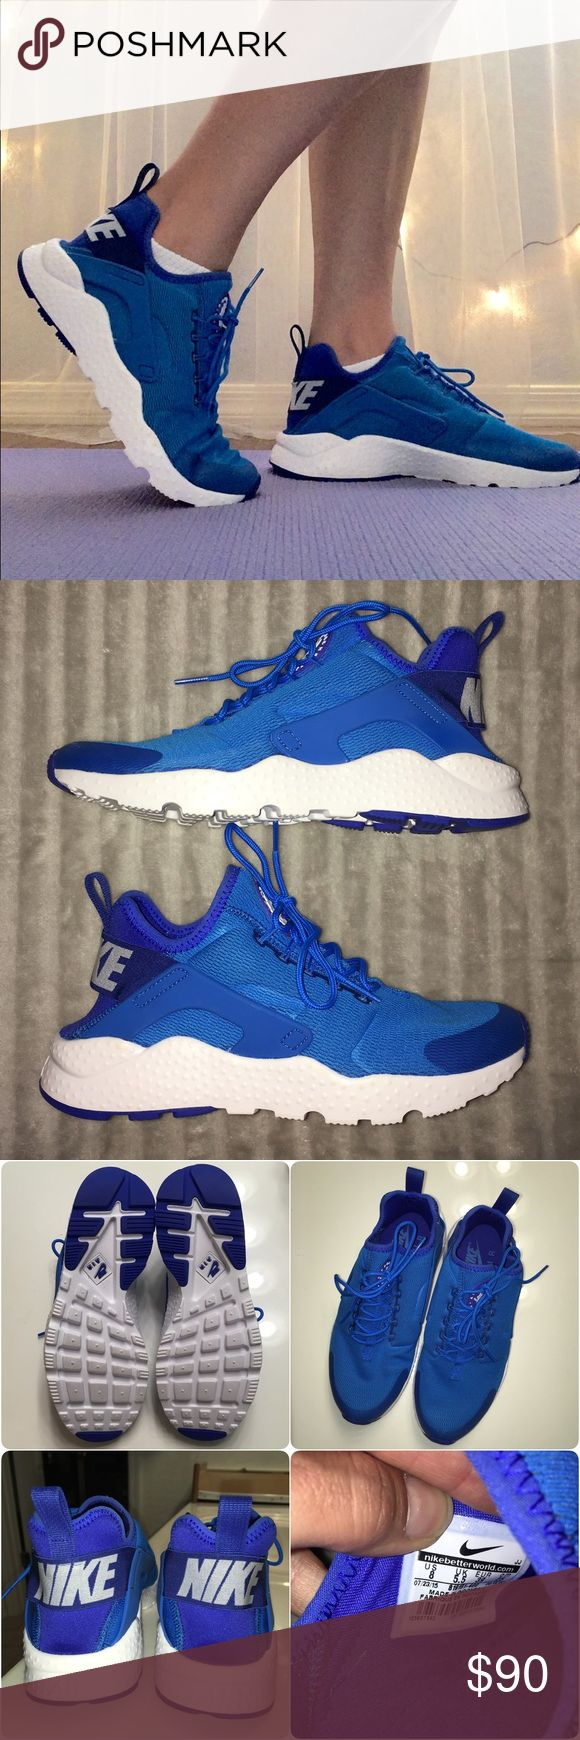 Nike Air Huarache's Run Ultra size 8 Blue and white Huarache's!! Only worn once for these pics! Comes with box- top is gone. Size 8 women's Nike Shoes Athletic Shoes